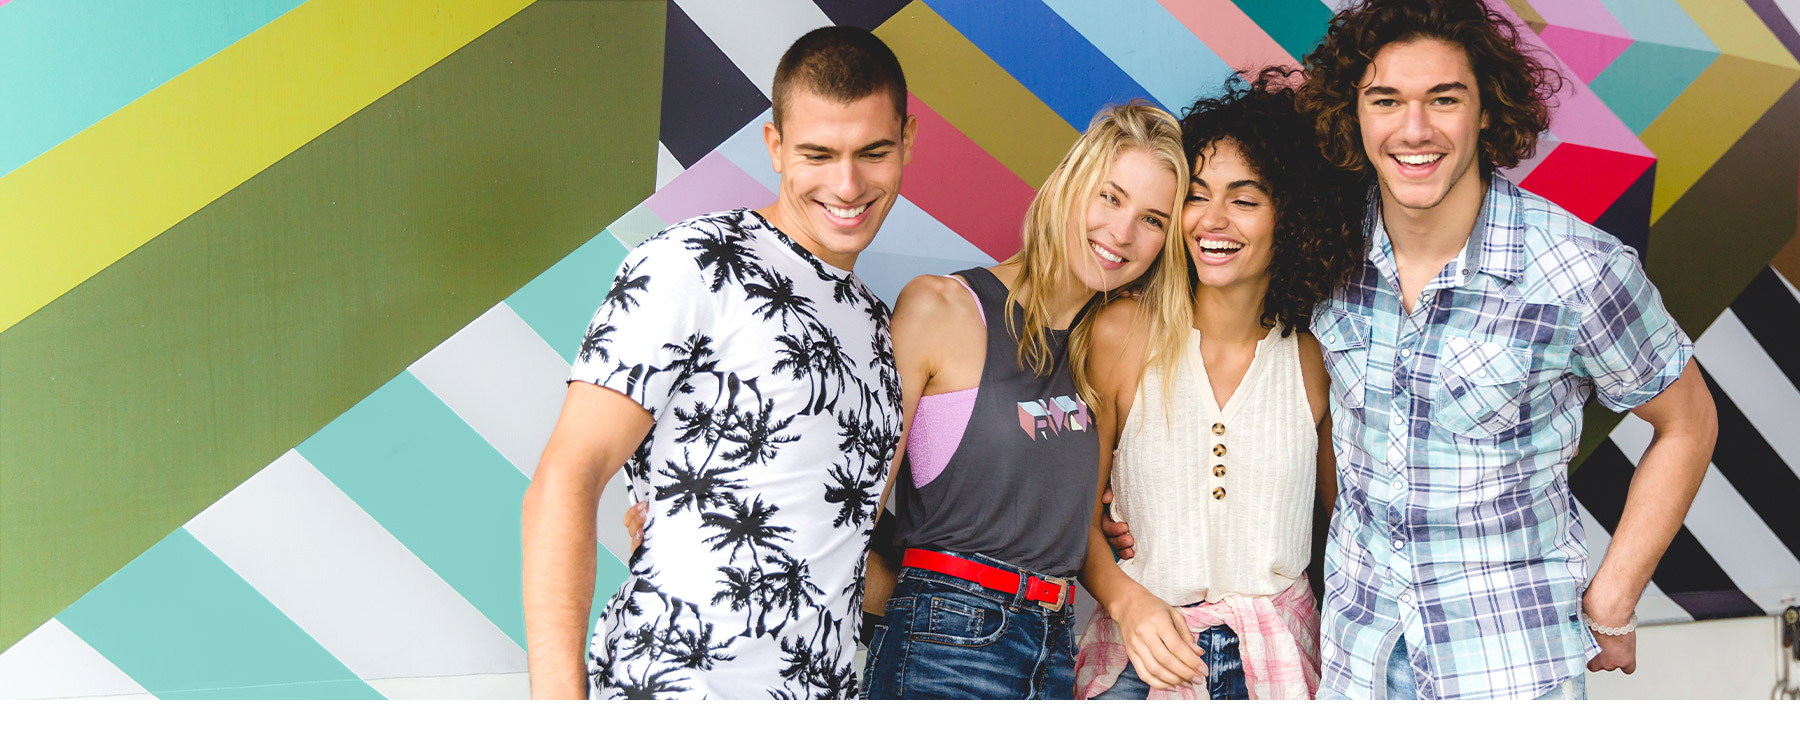 Group of people all wearing new arrivals from Buckle's summer 2019 collection.